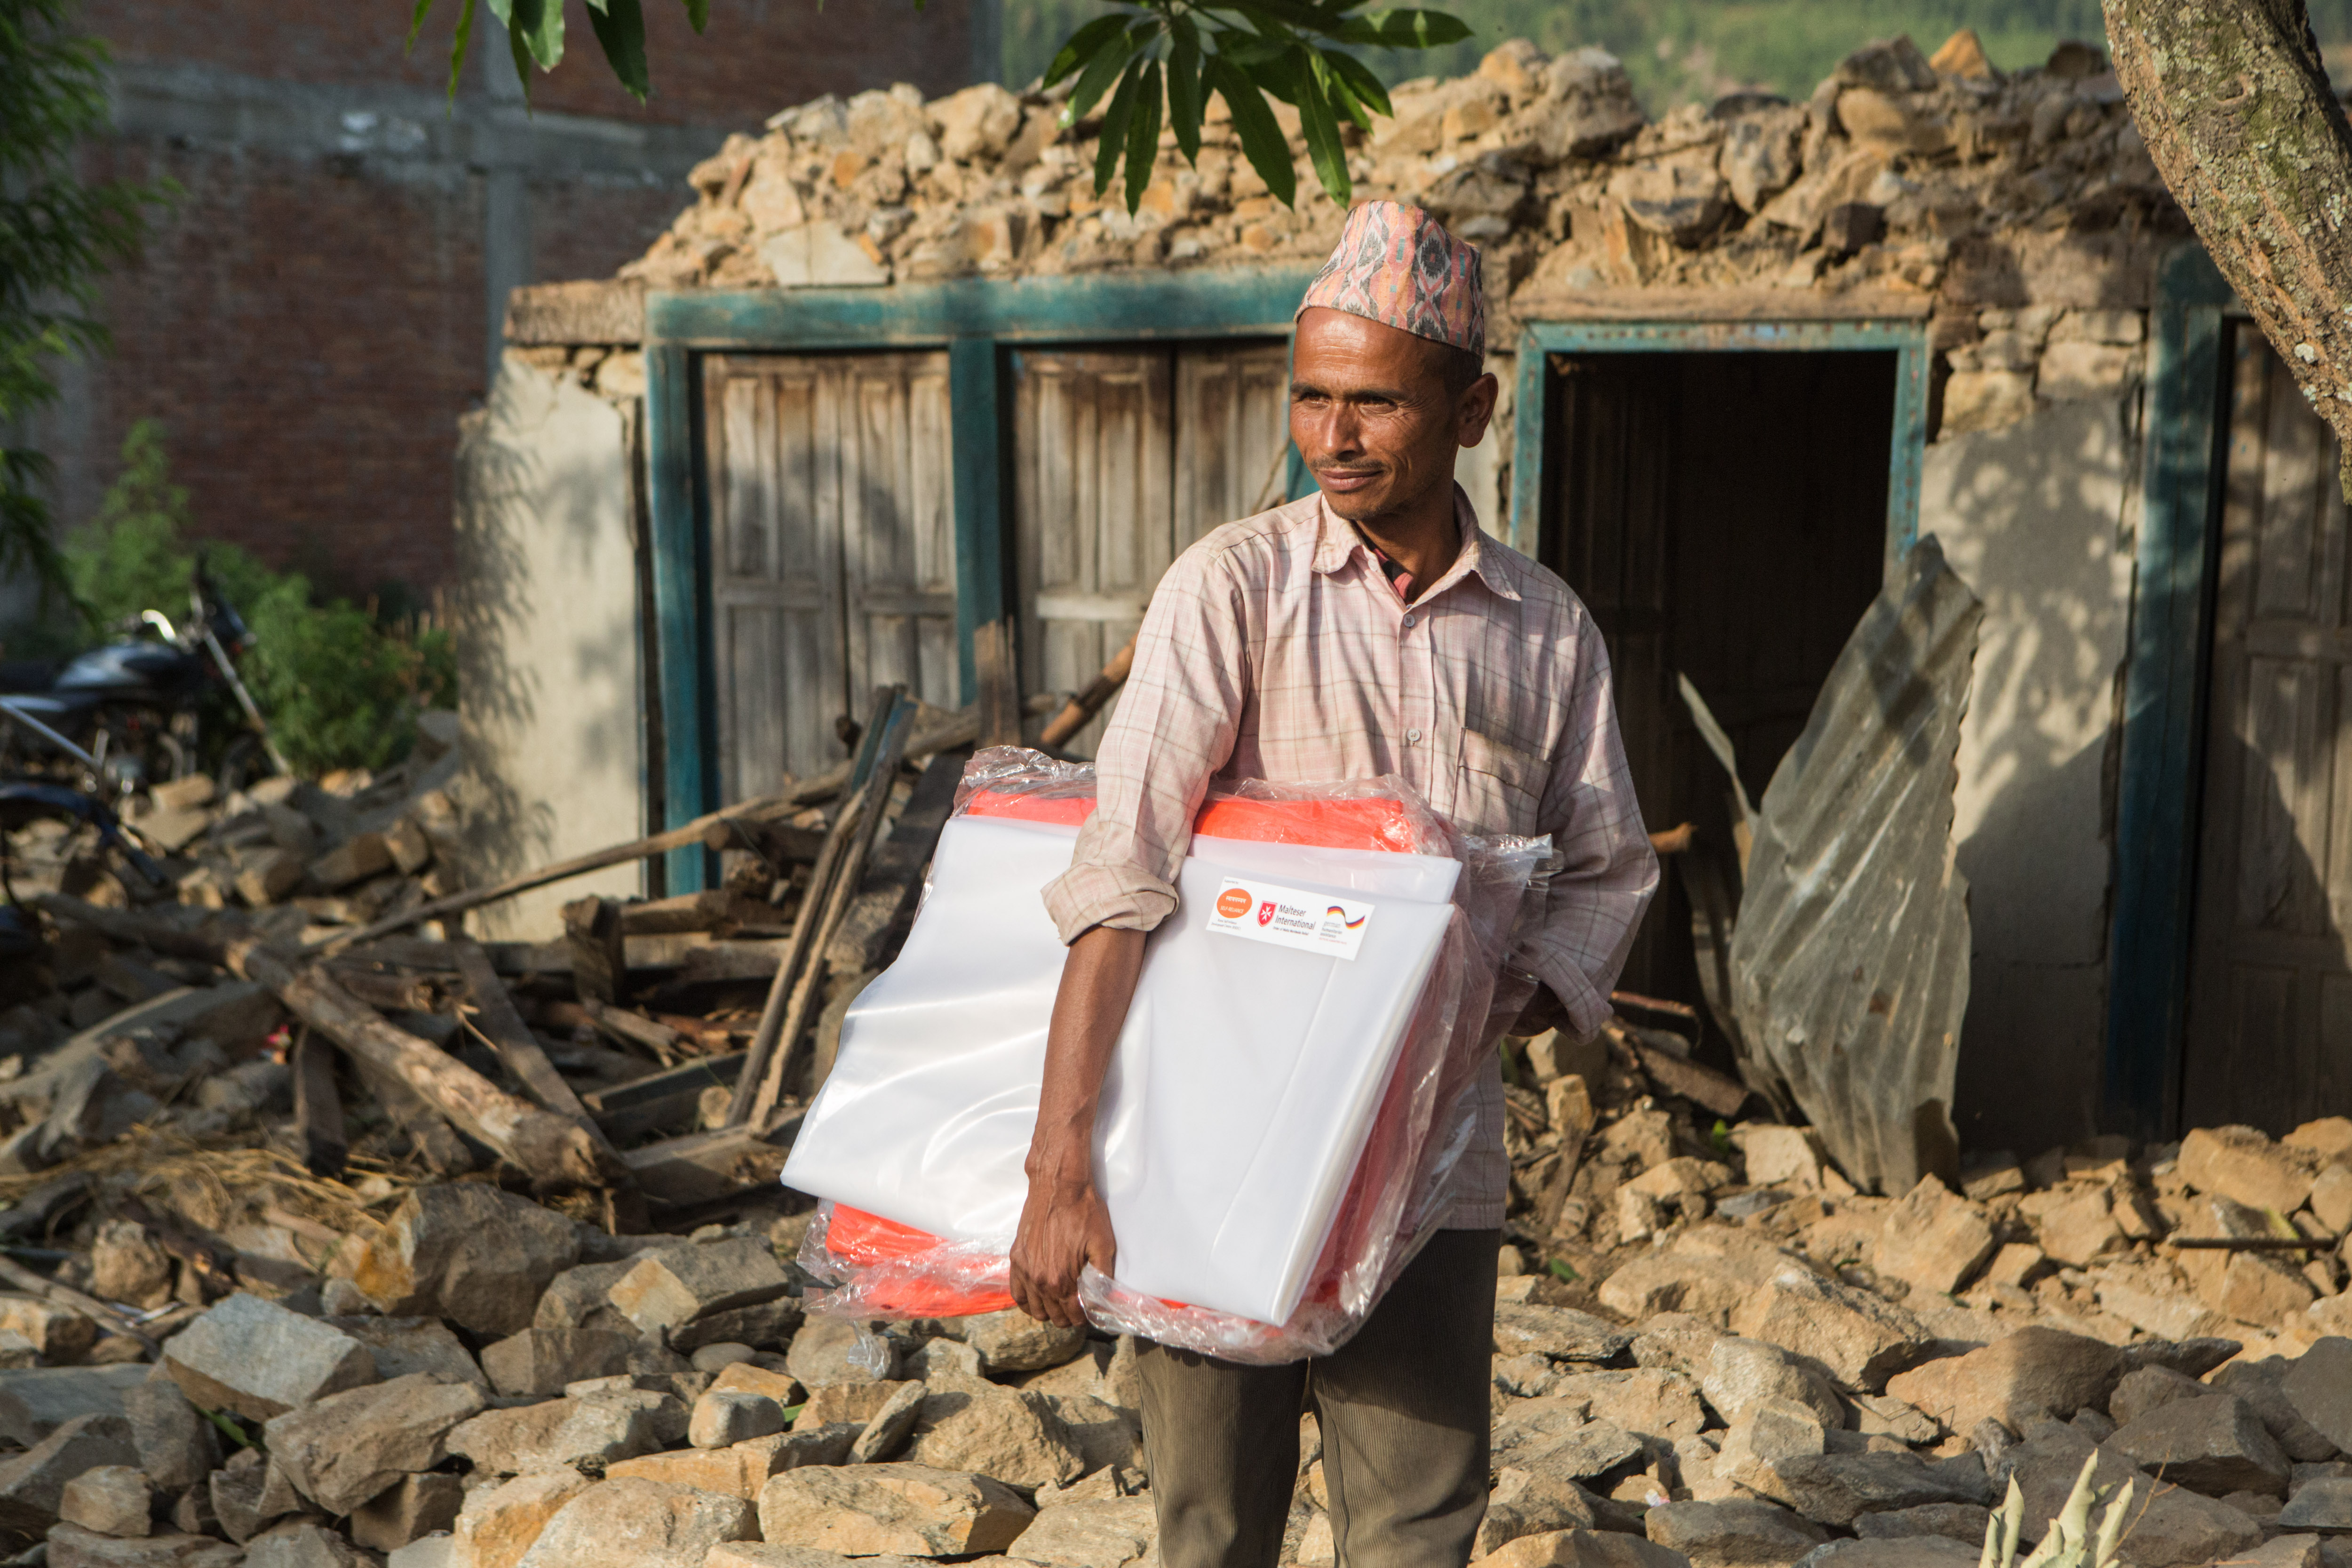 Malteser International provided vital aid materials to over 70,000 people following the earthquake. Credit: Jana Asenbrennerova